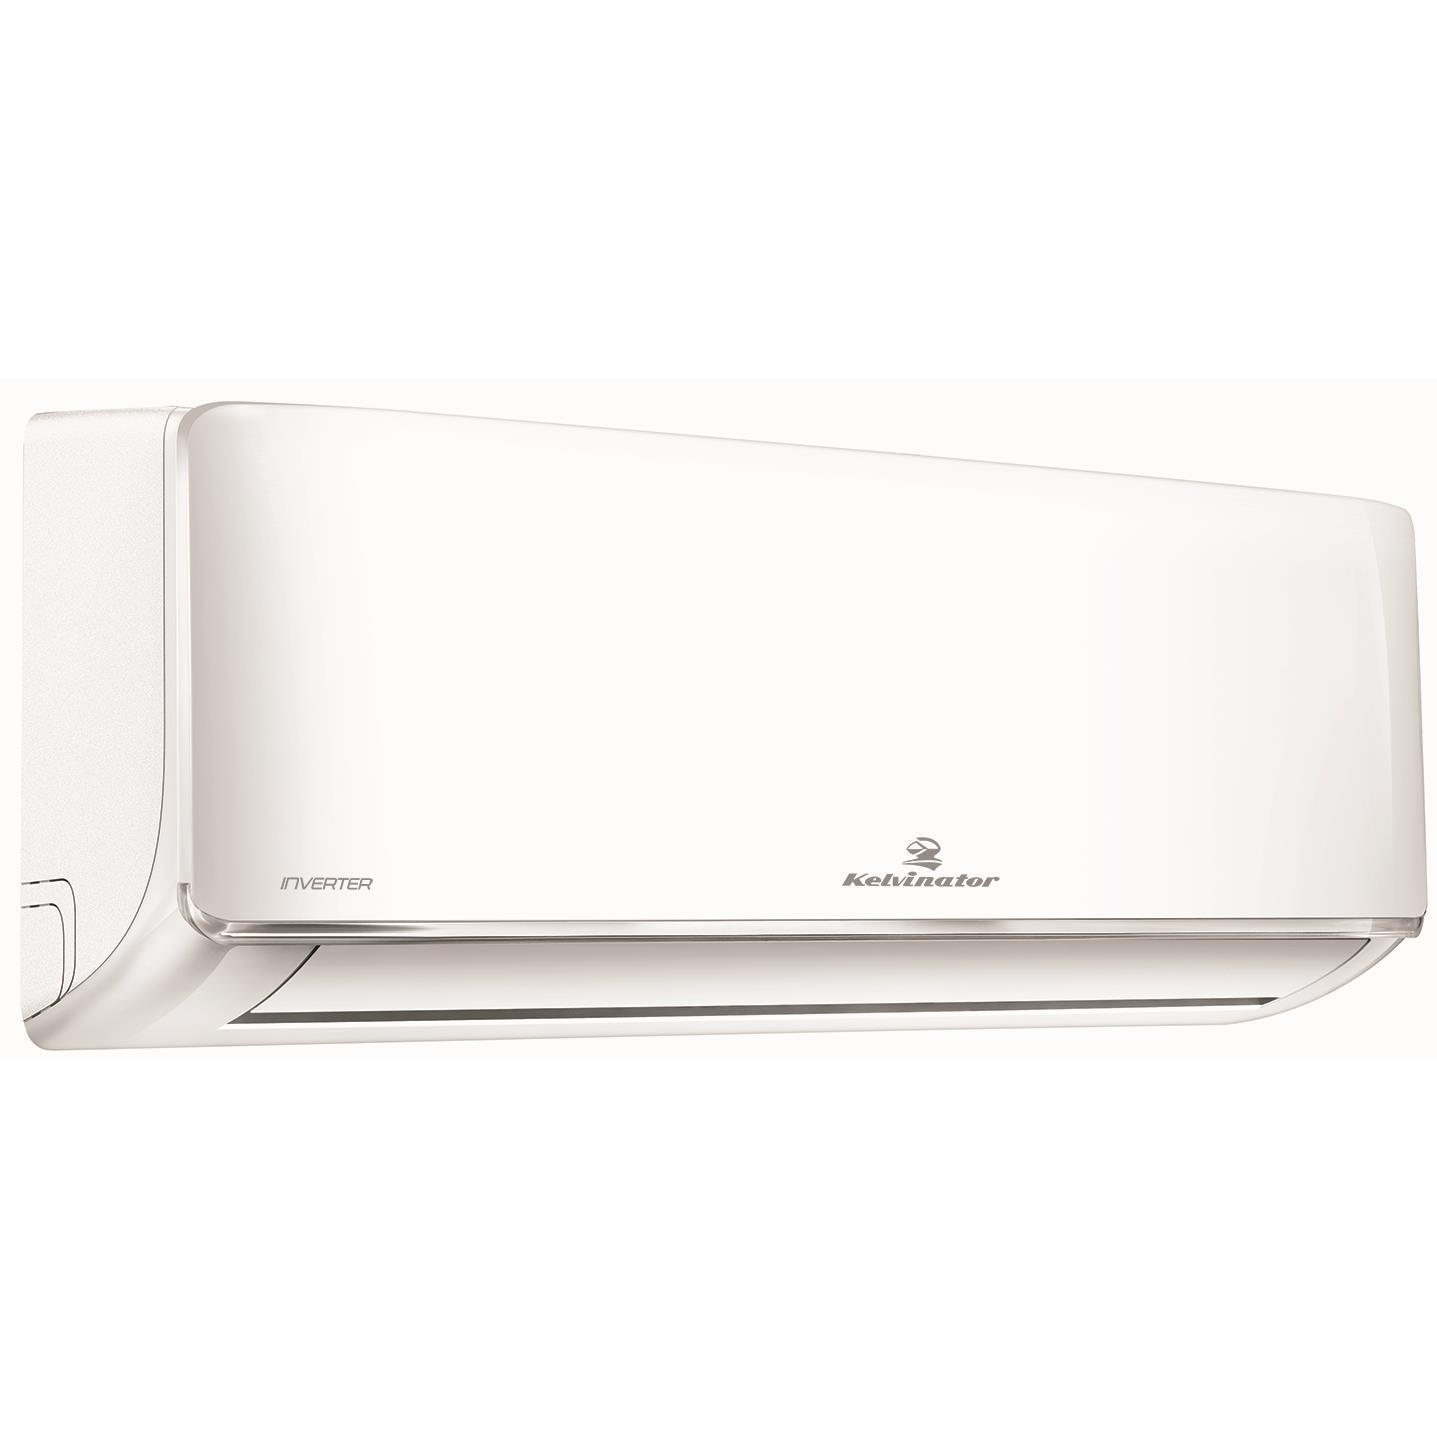 Kelvinator 2.5kW Split System Inverter Air Conditioner (Cooling Only)